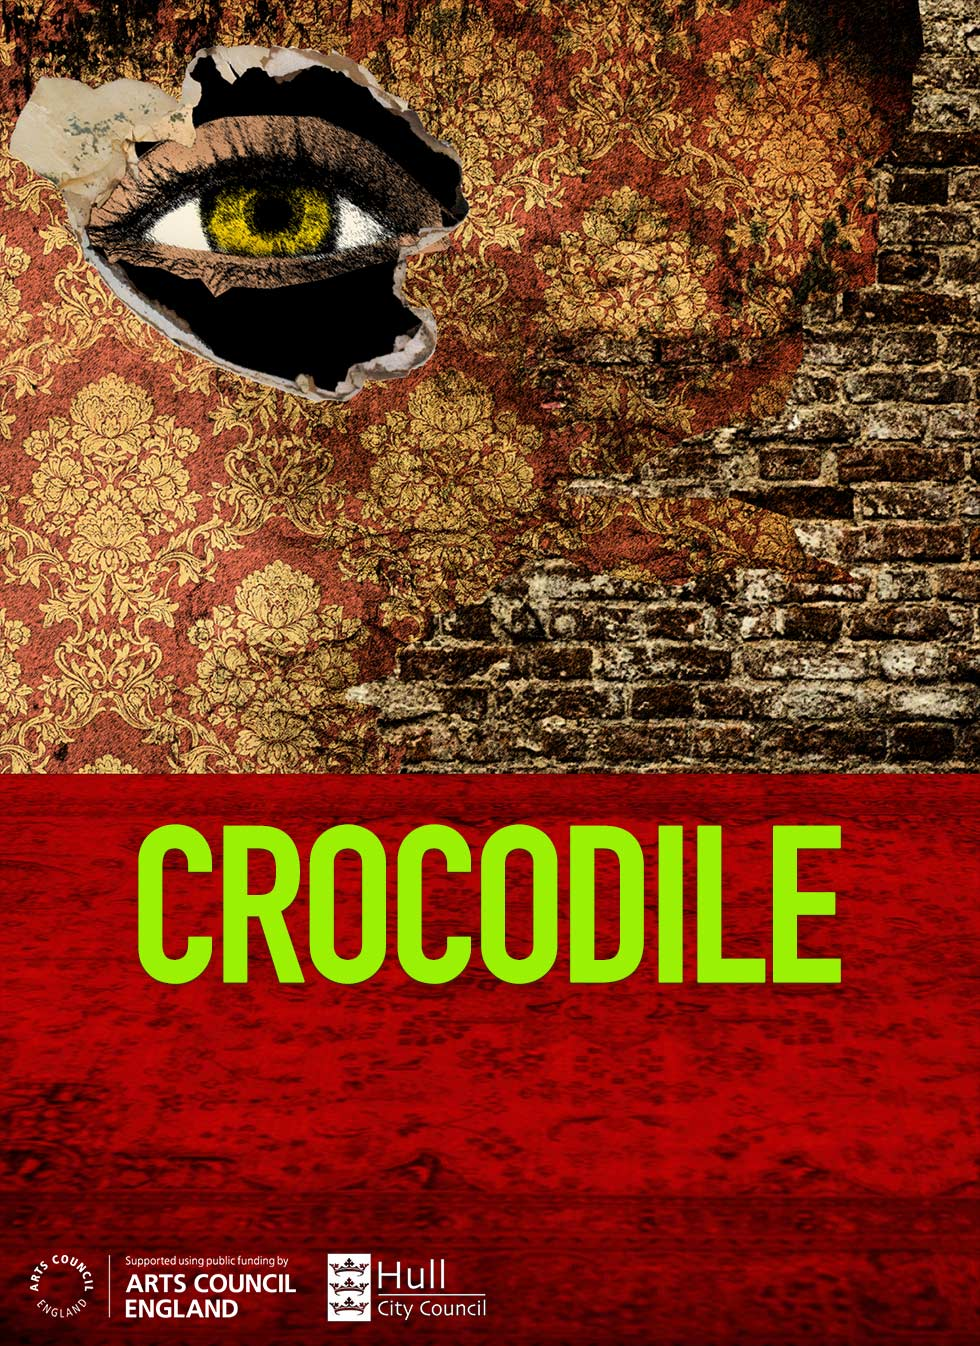 Crocodile by Lente Verelst